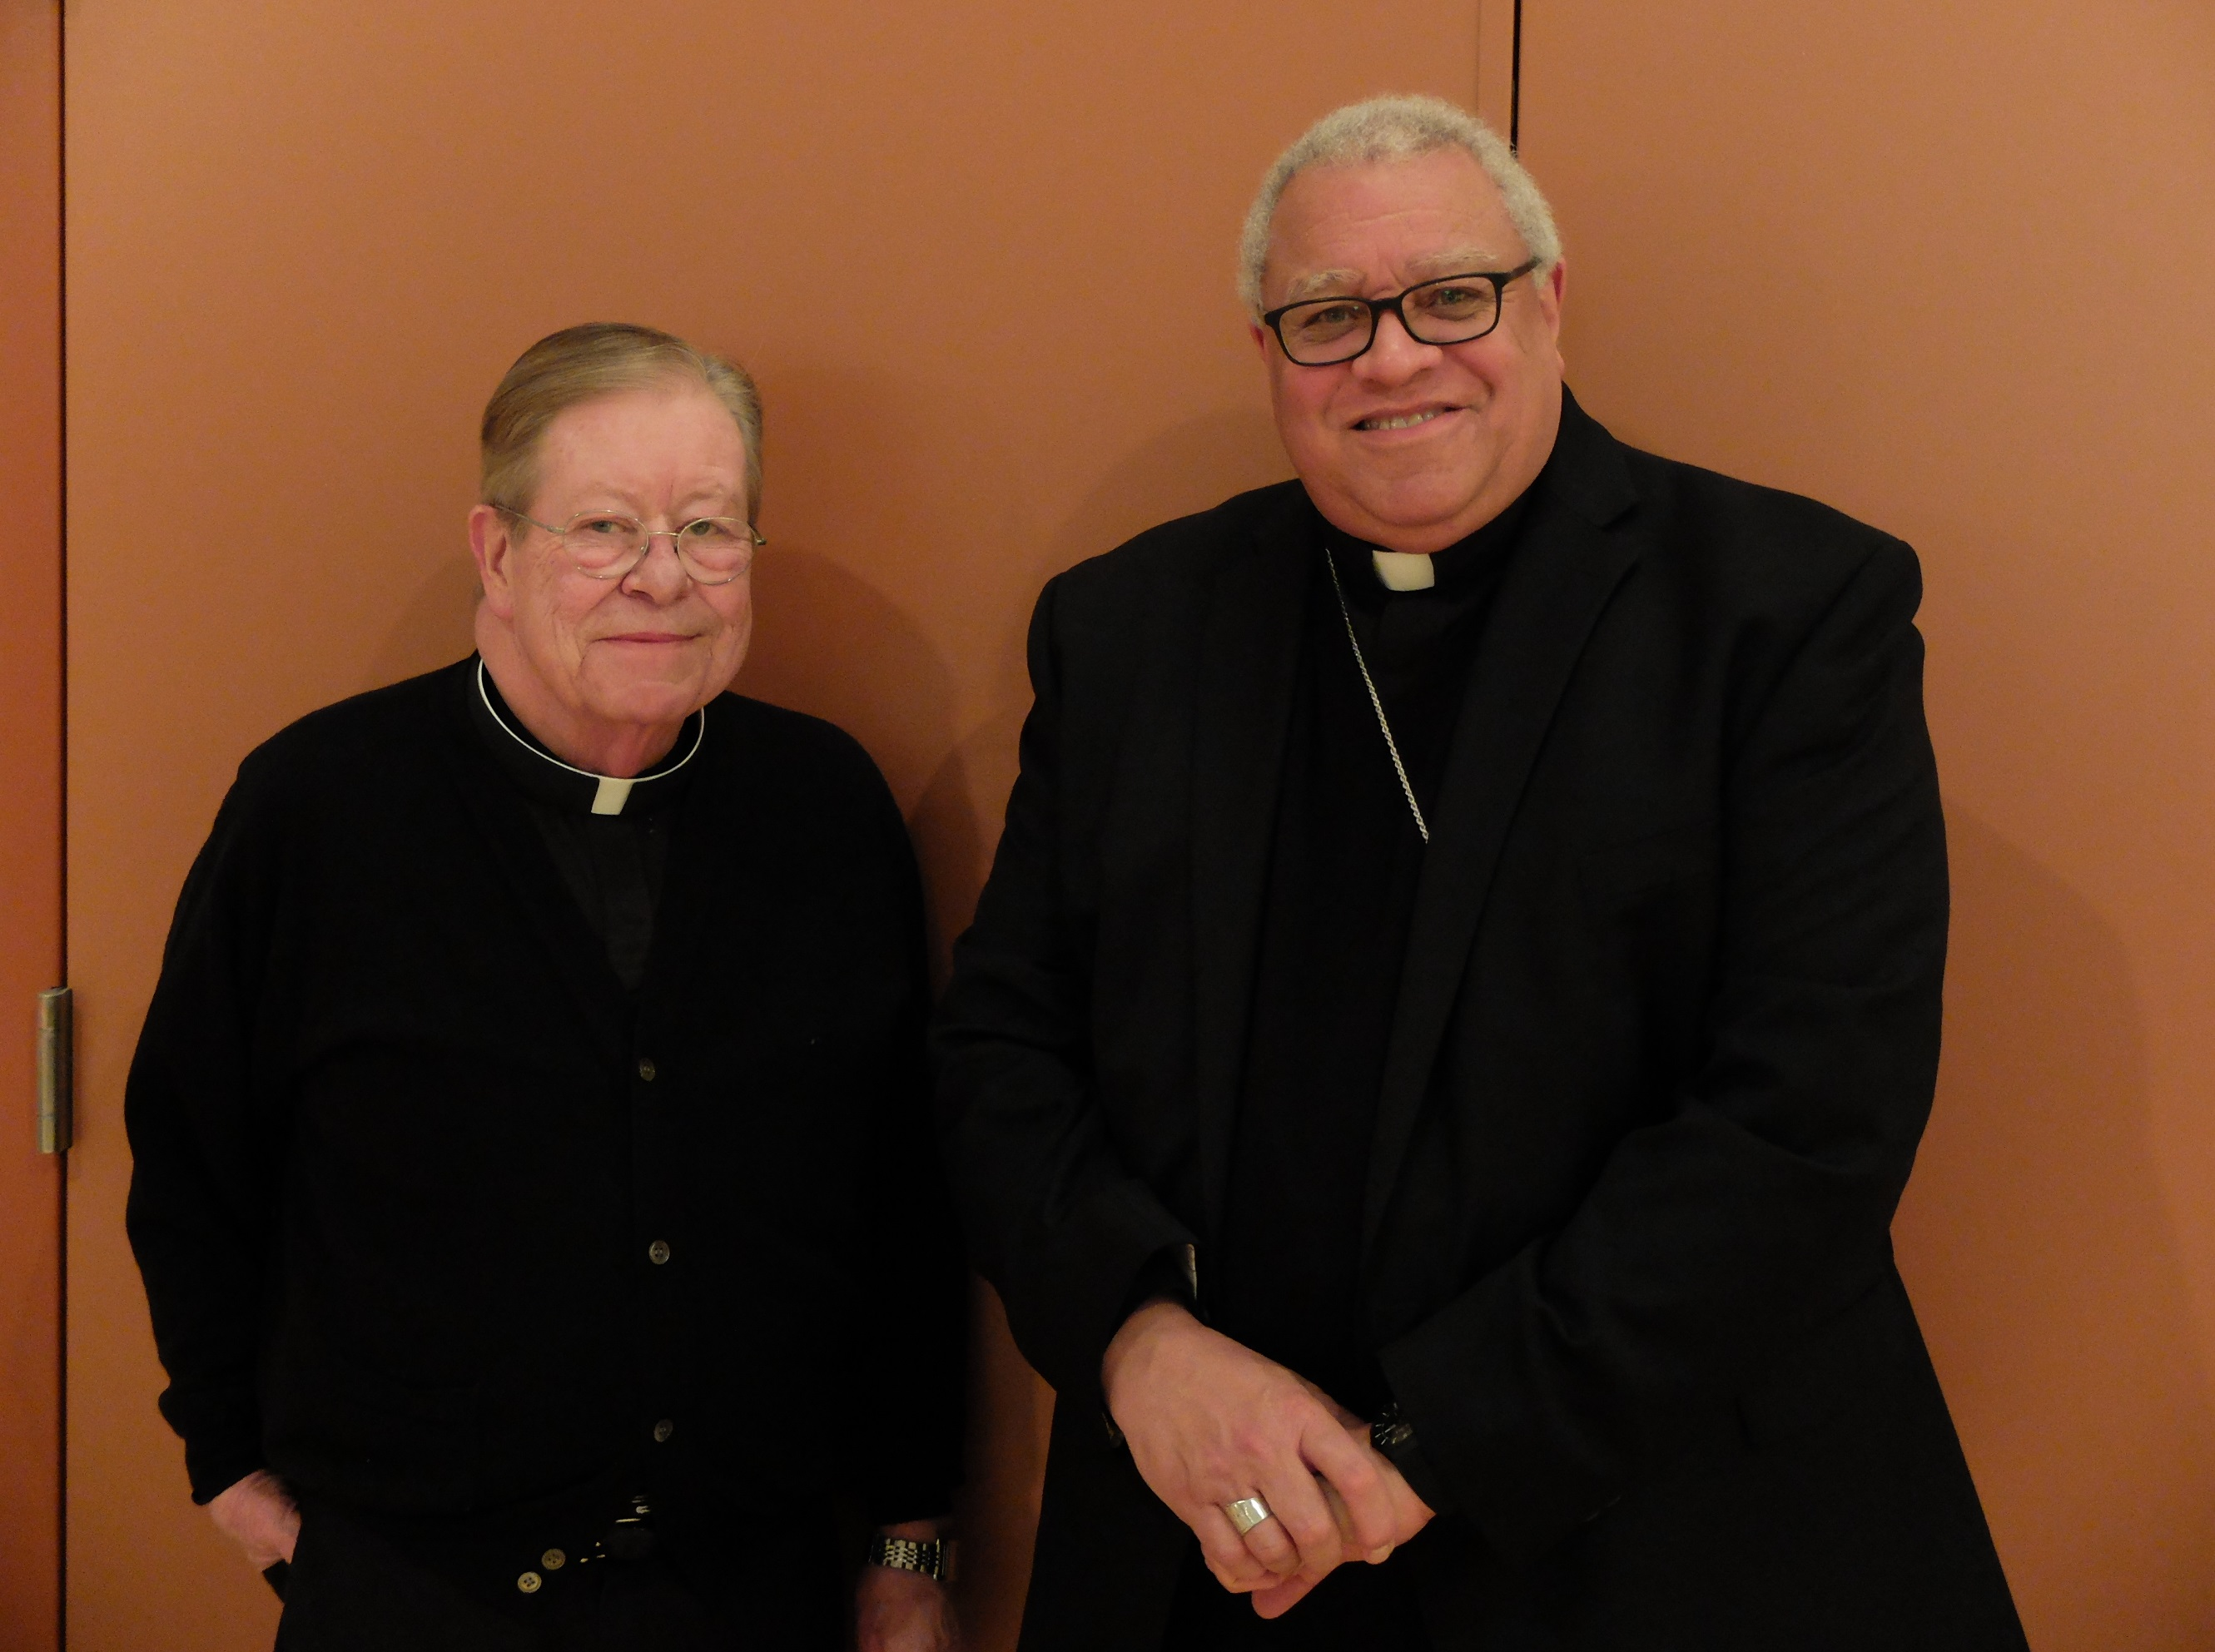 Fr. Terry with Bishop Murry